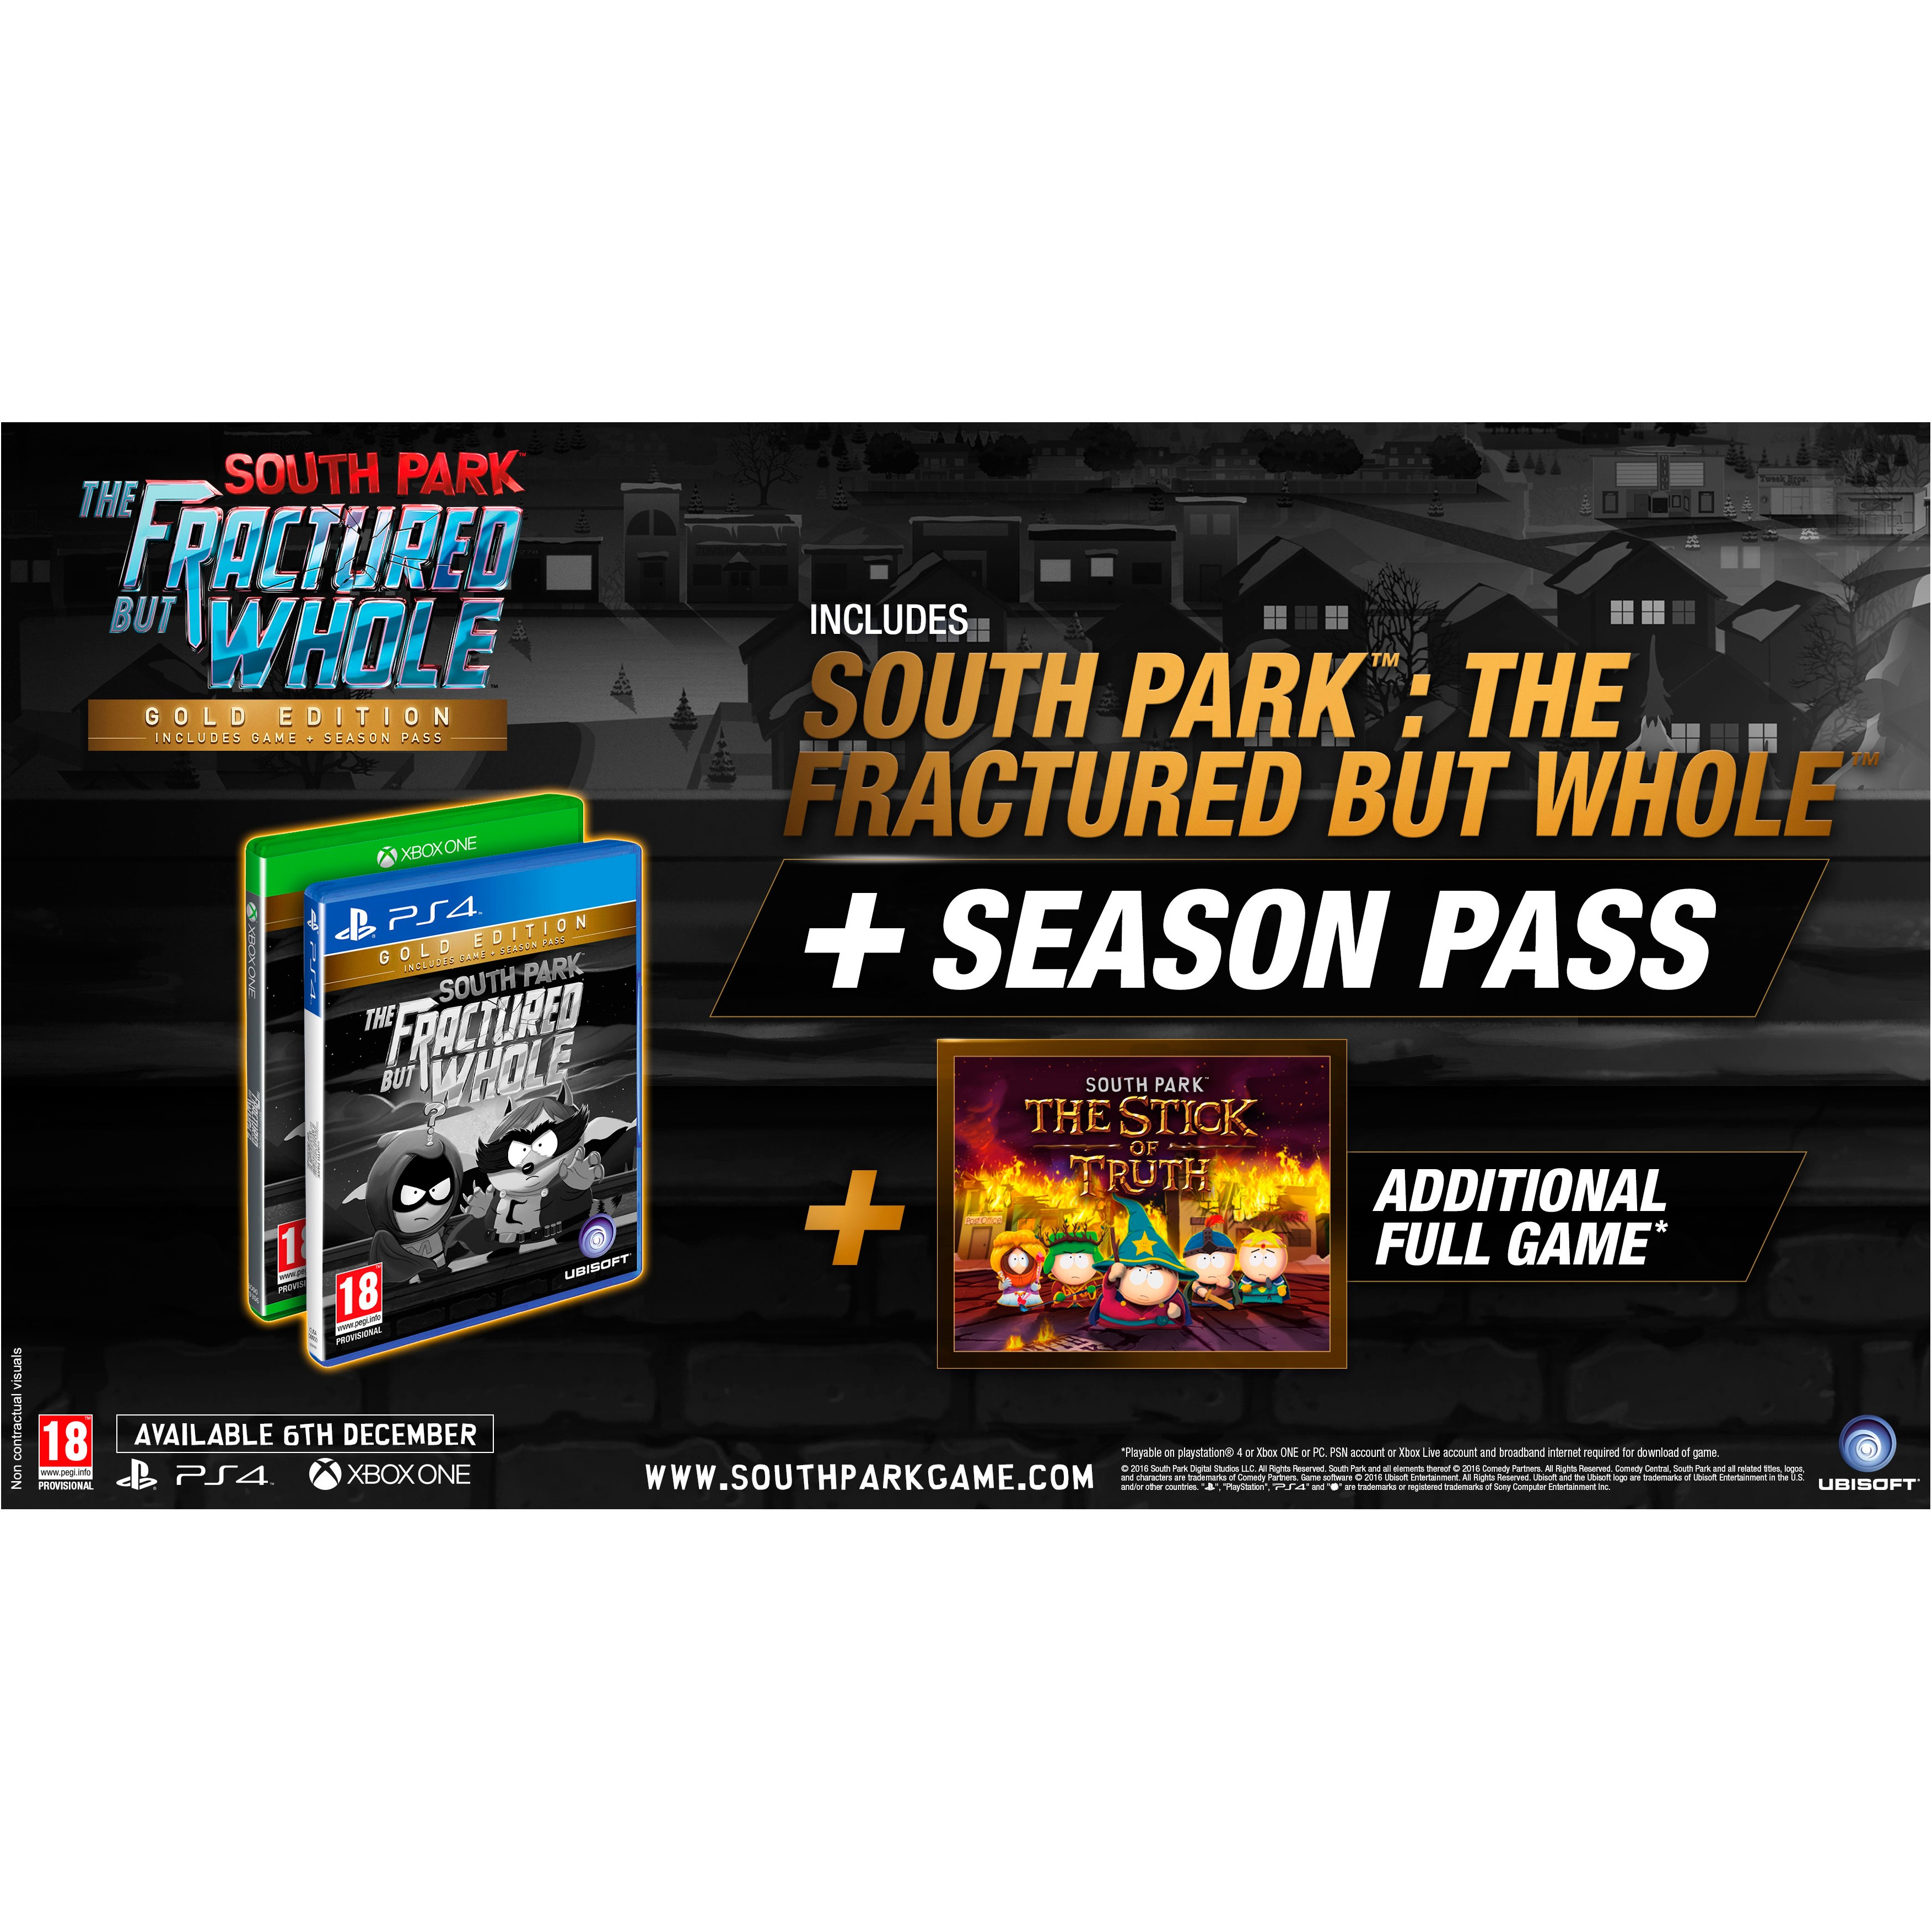 PS4SOUTHPFBG : South Park: The Fractured but Whole Gold Ed. (PS4)